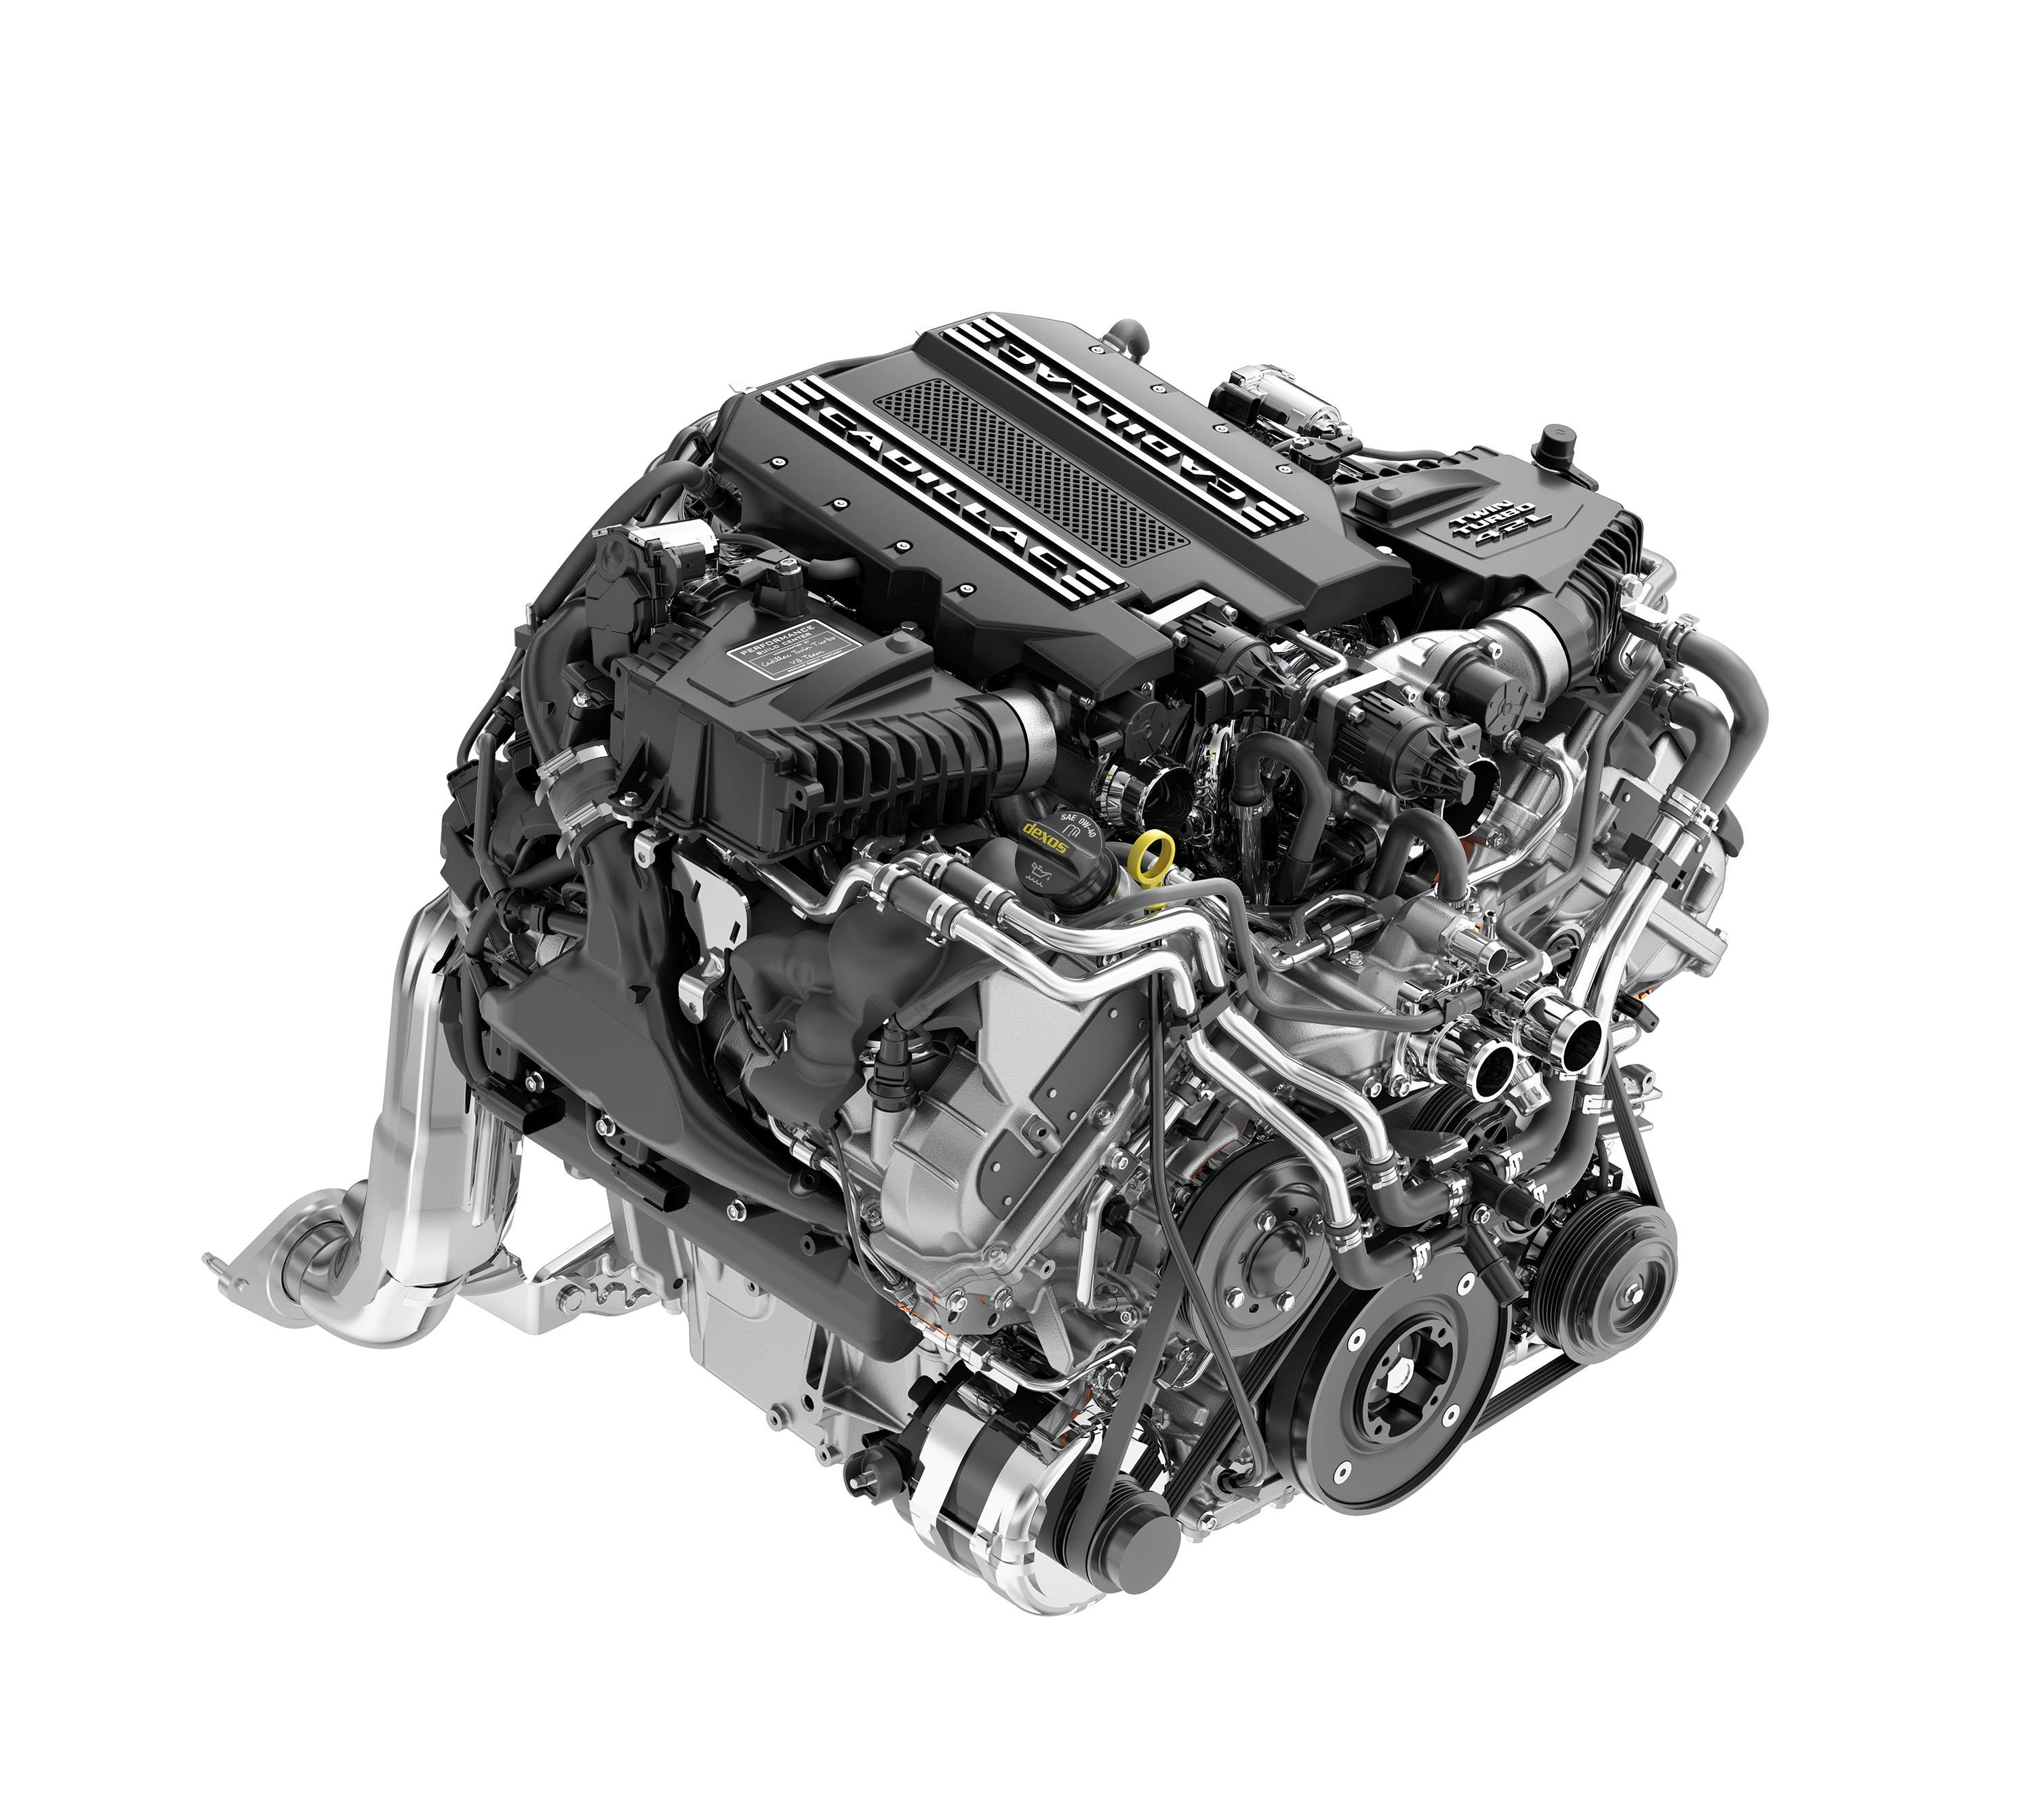 C8 Z06 Blackwing-confirmed-as-the-name-of-the-cadillac-55l-twin-turbo-v8-128804_1